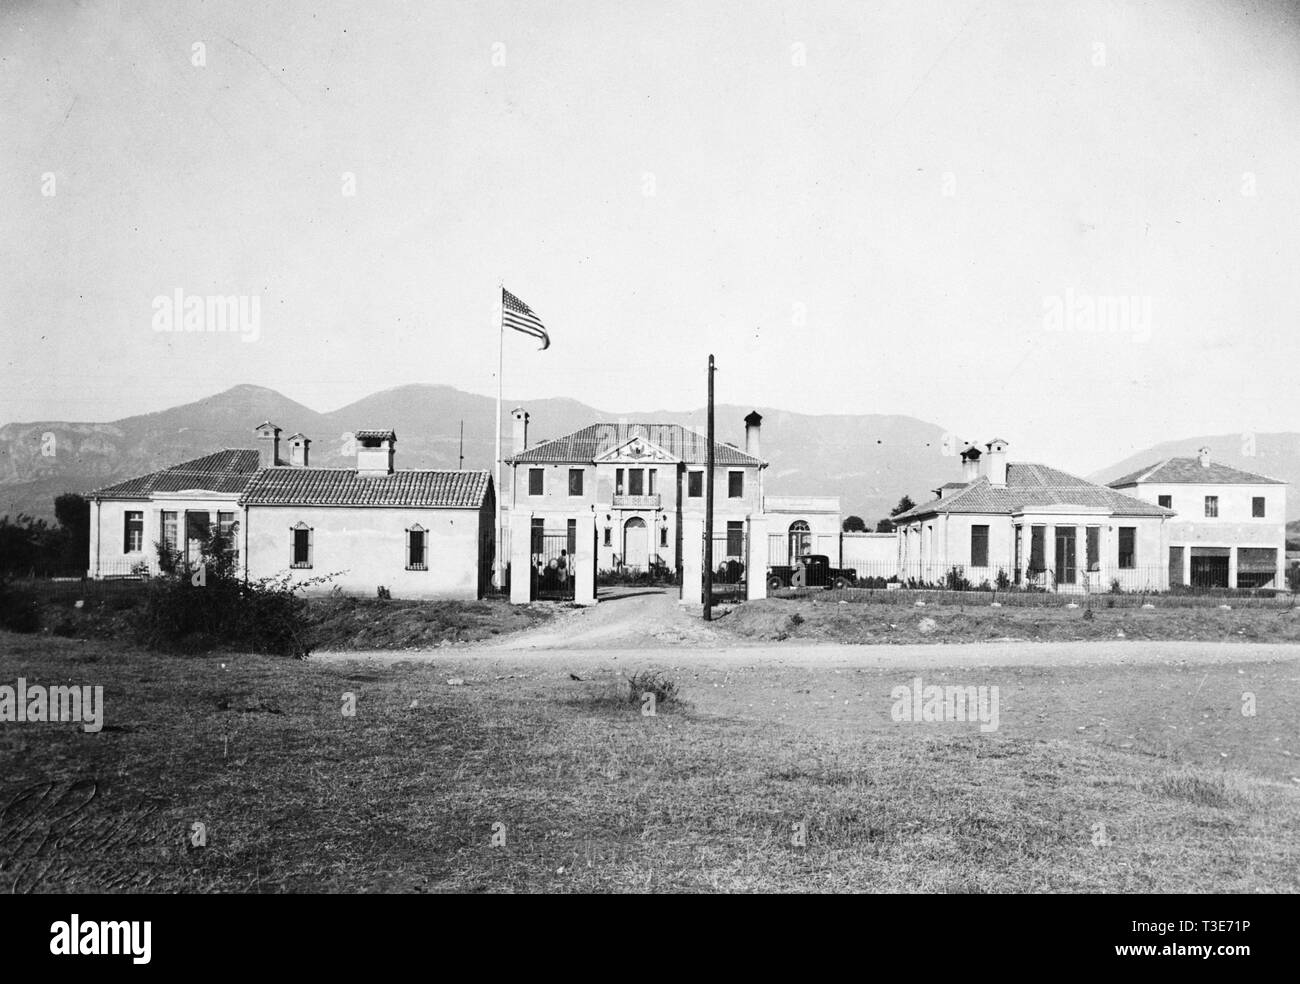 Front view of U.S. Legation in Tirana Albania ca. 1938 - Stock Image